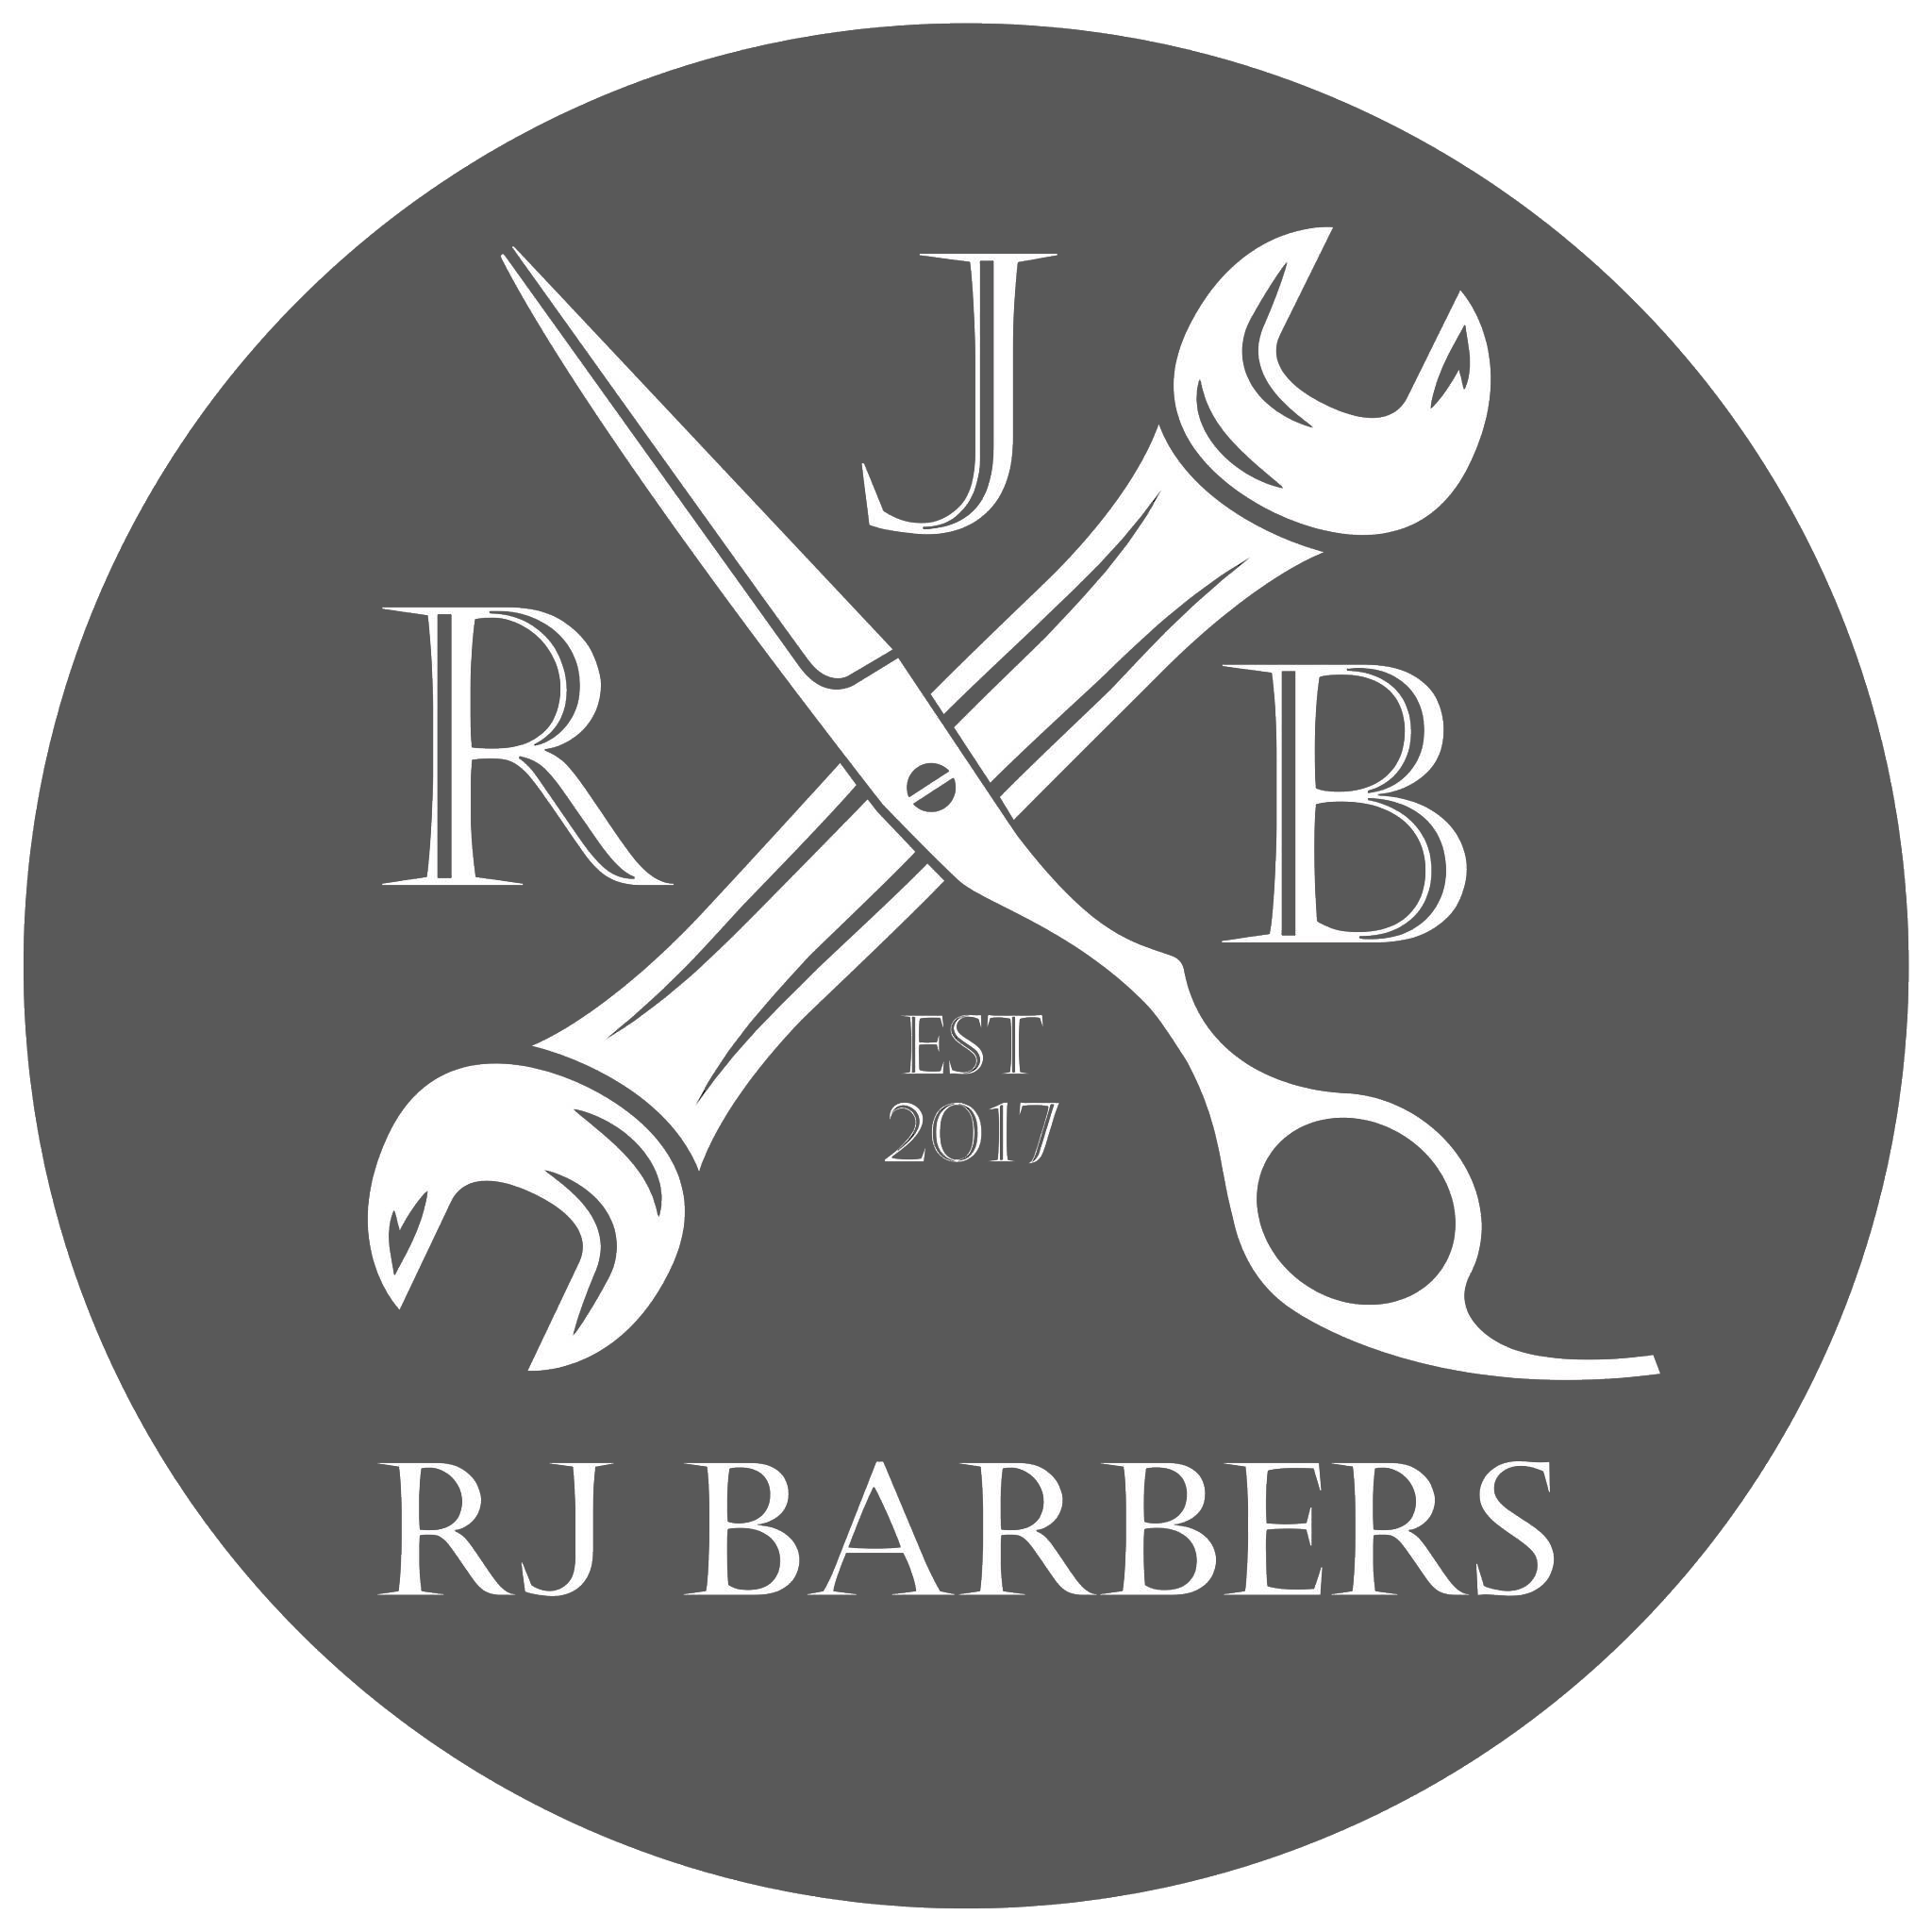 rjbarbers.co.uk logo james milton